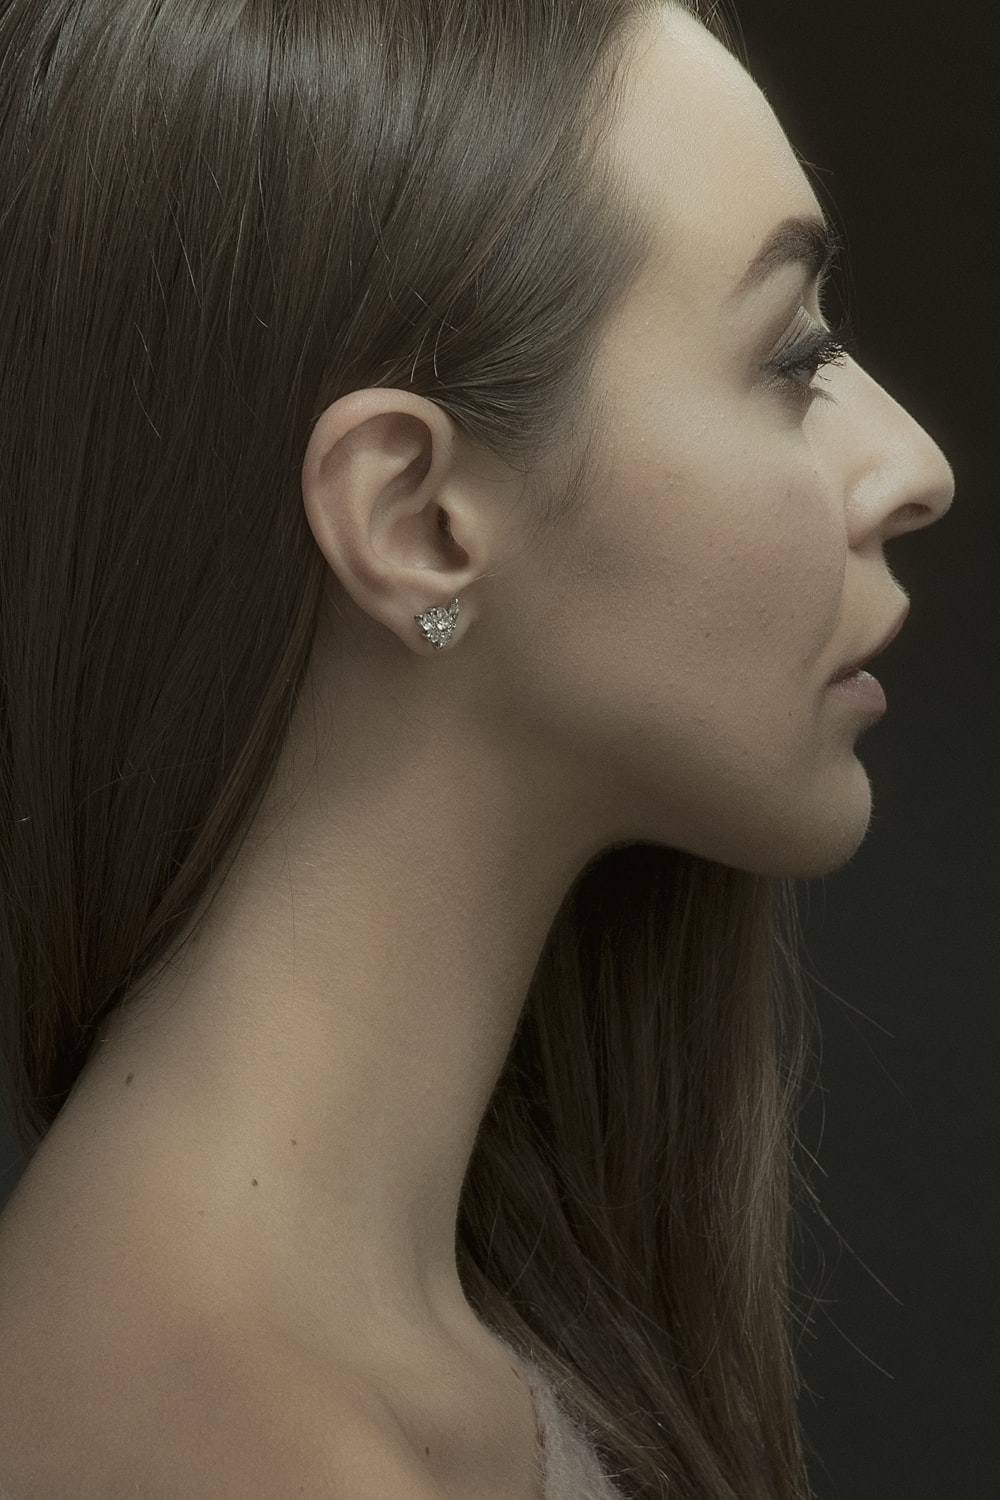 woman with silver stud earring